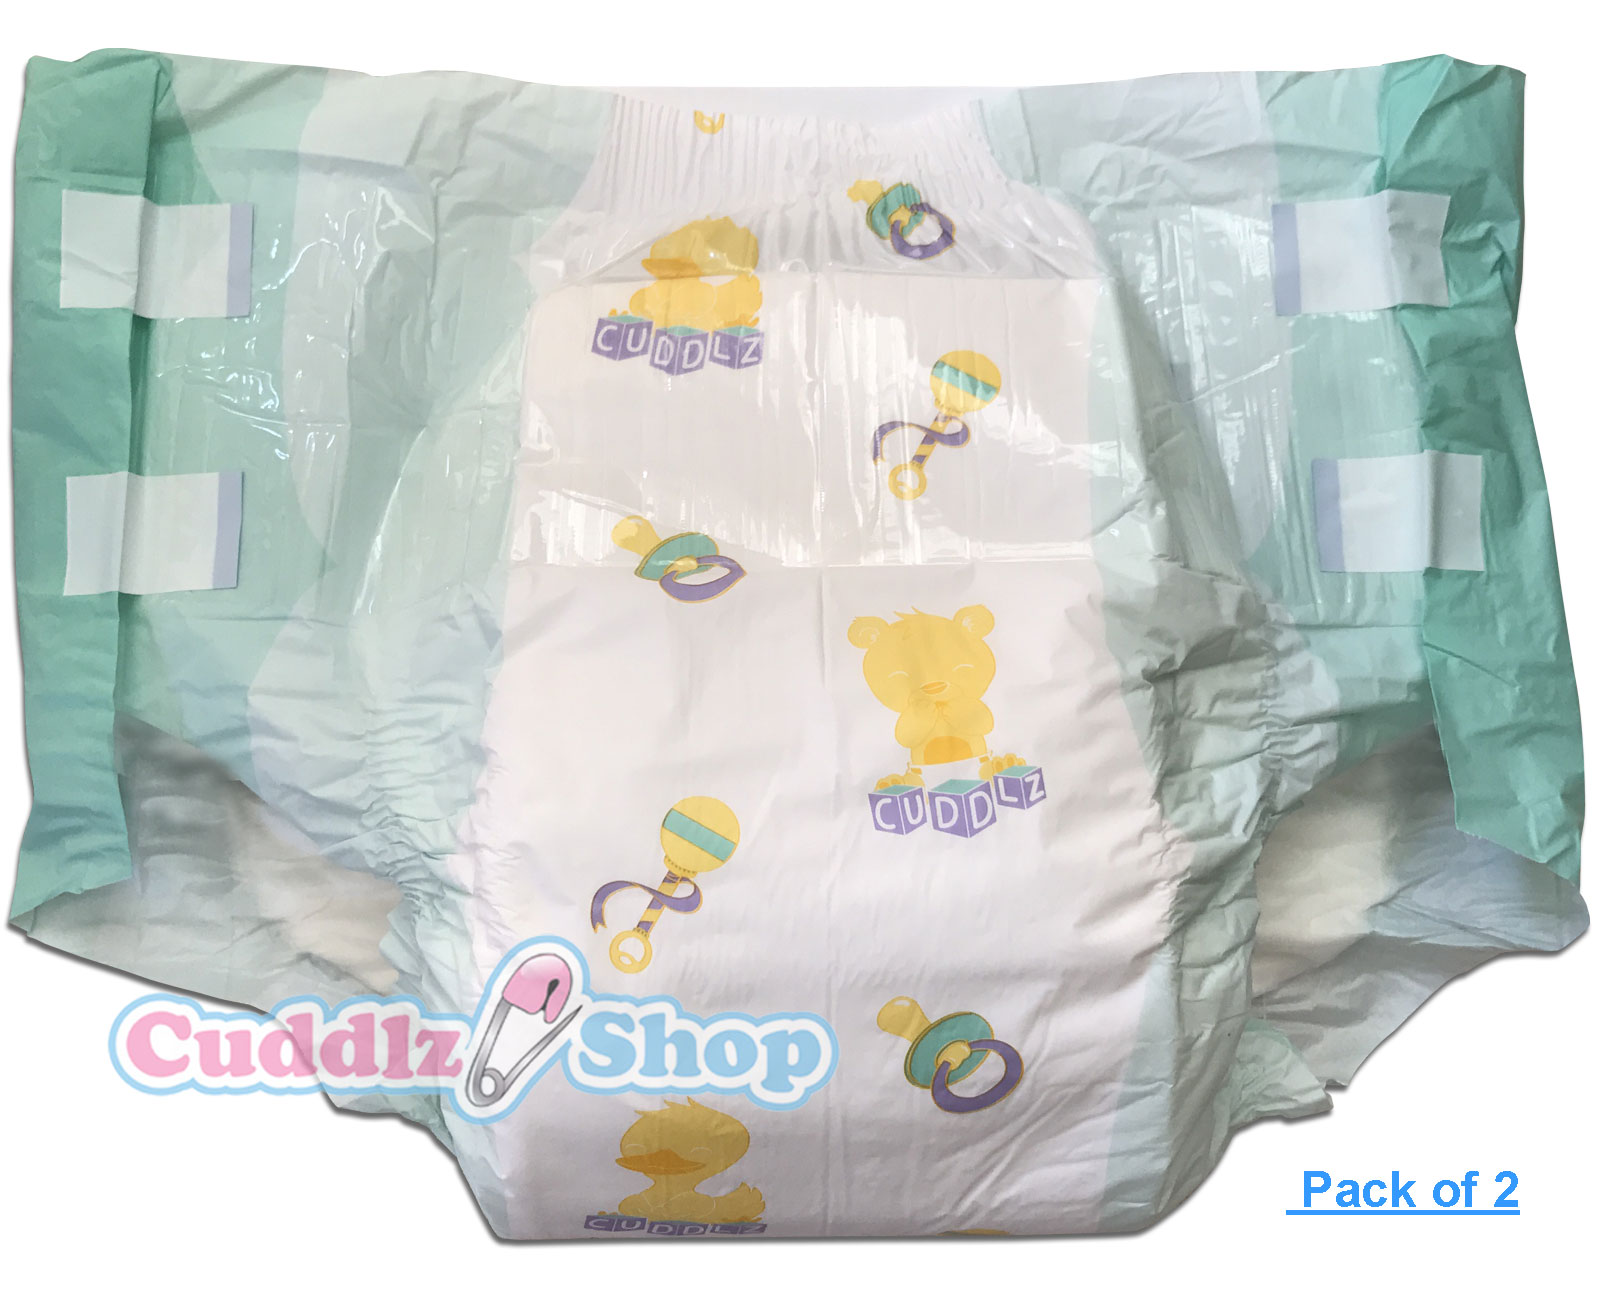 2 Cuddlz Large Adult Nursery Pattern All Over Printed